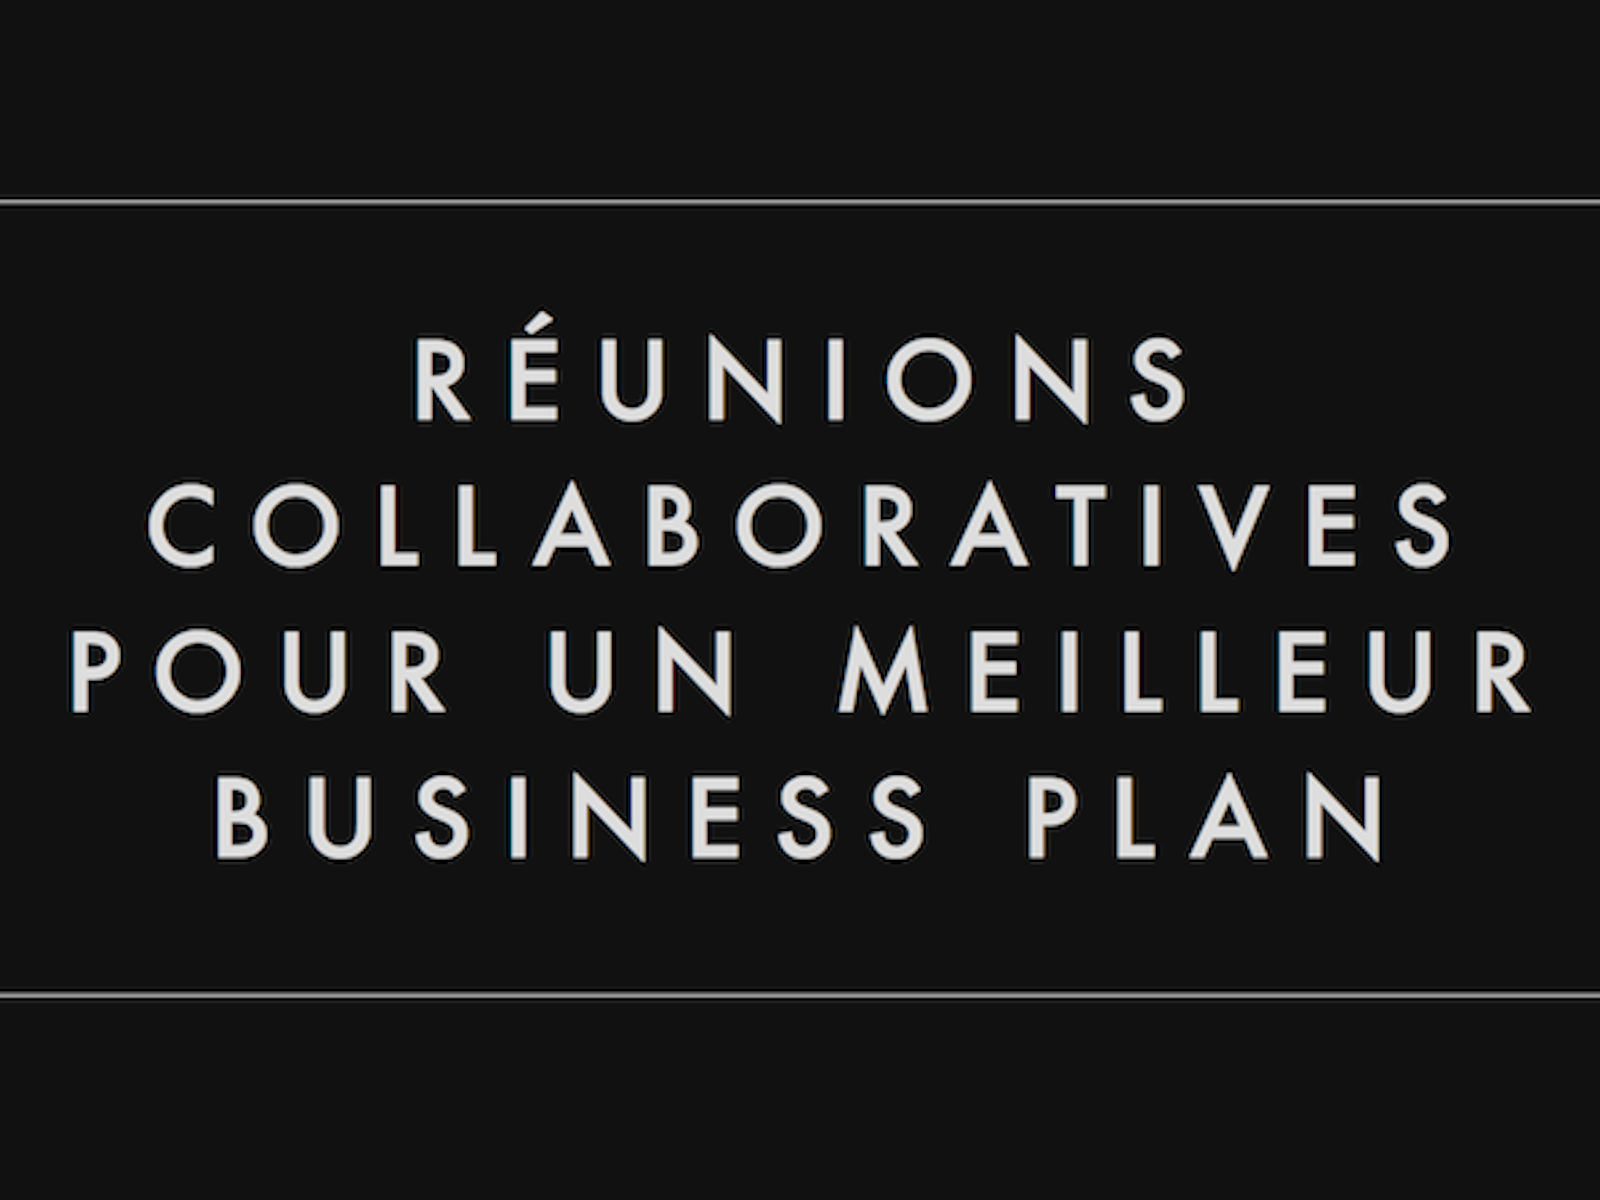 Réunions collaboratives pour un meilleur business plan